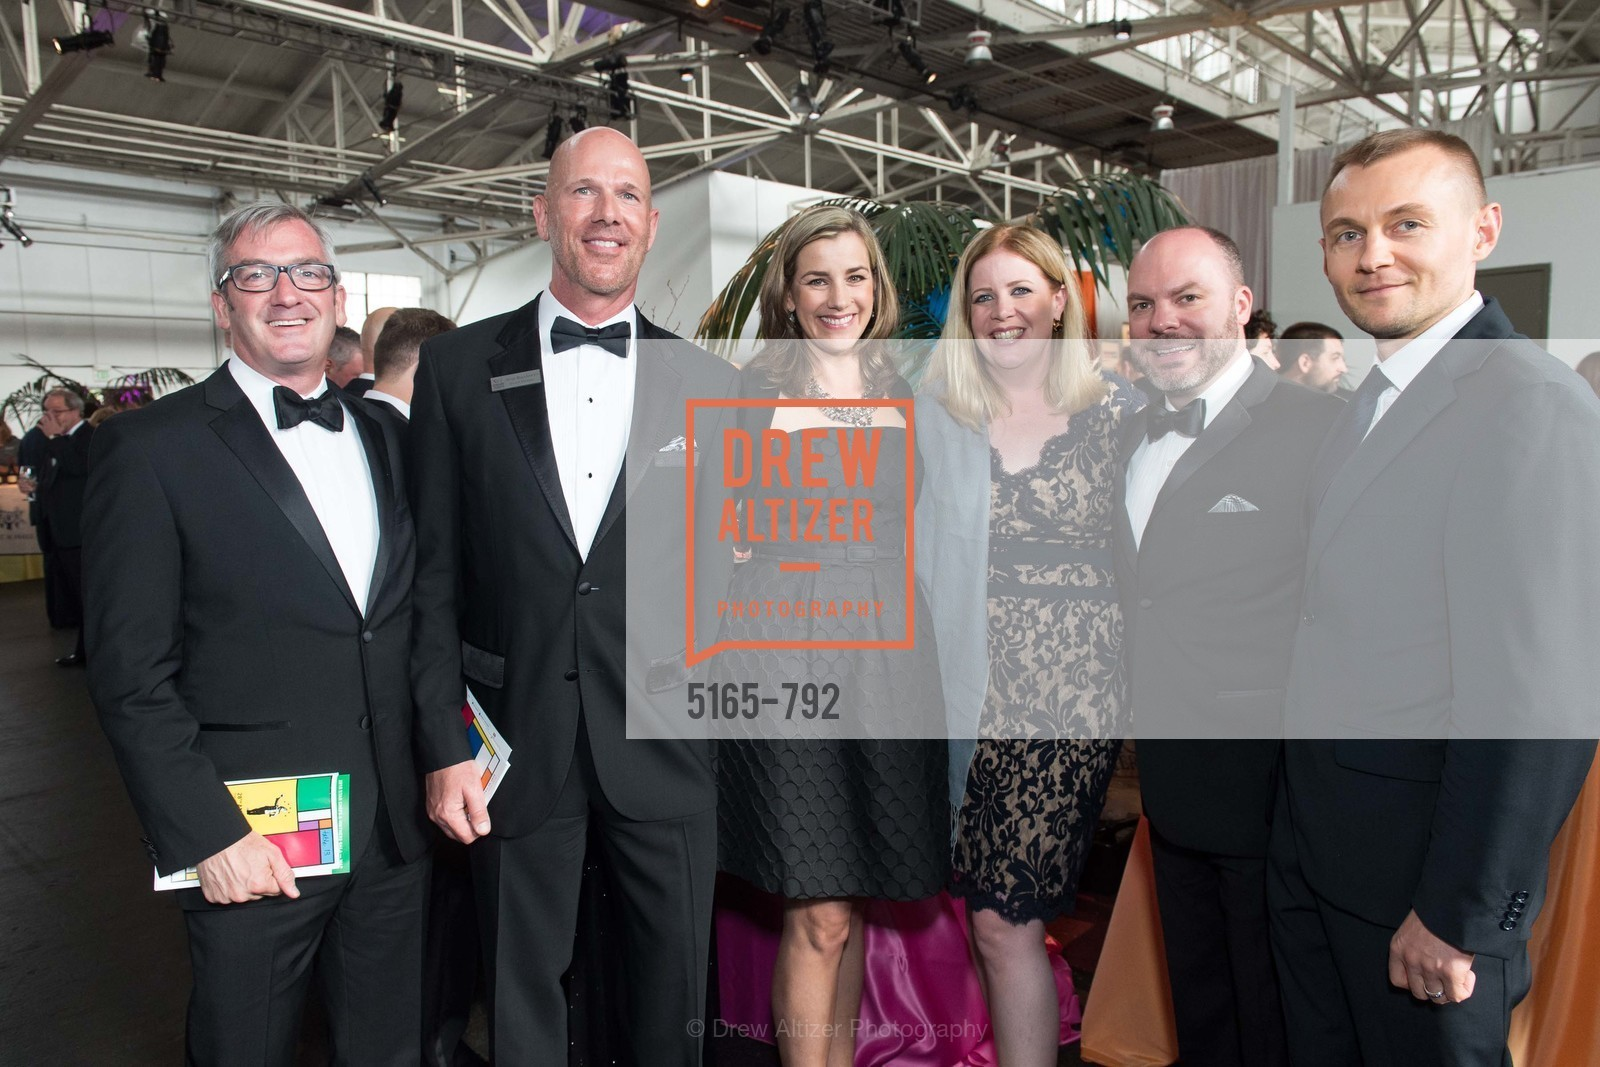 Christopher Downing, Arne Boudewyn, Victoria Murphy, Kristen Green, Michael McNelly, MEALS ON WHEELS OF SAN FRANCISCO'S 28th Annual Star Chefs and Vintners Gala, US, April 20th, 2015,Drew Altizer, Drew Altizer Photography, full-service agency, private events, San Francisco photographer, photographer california